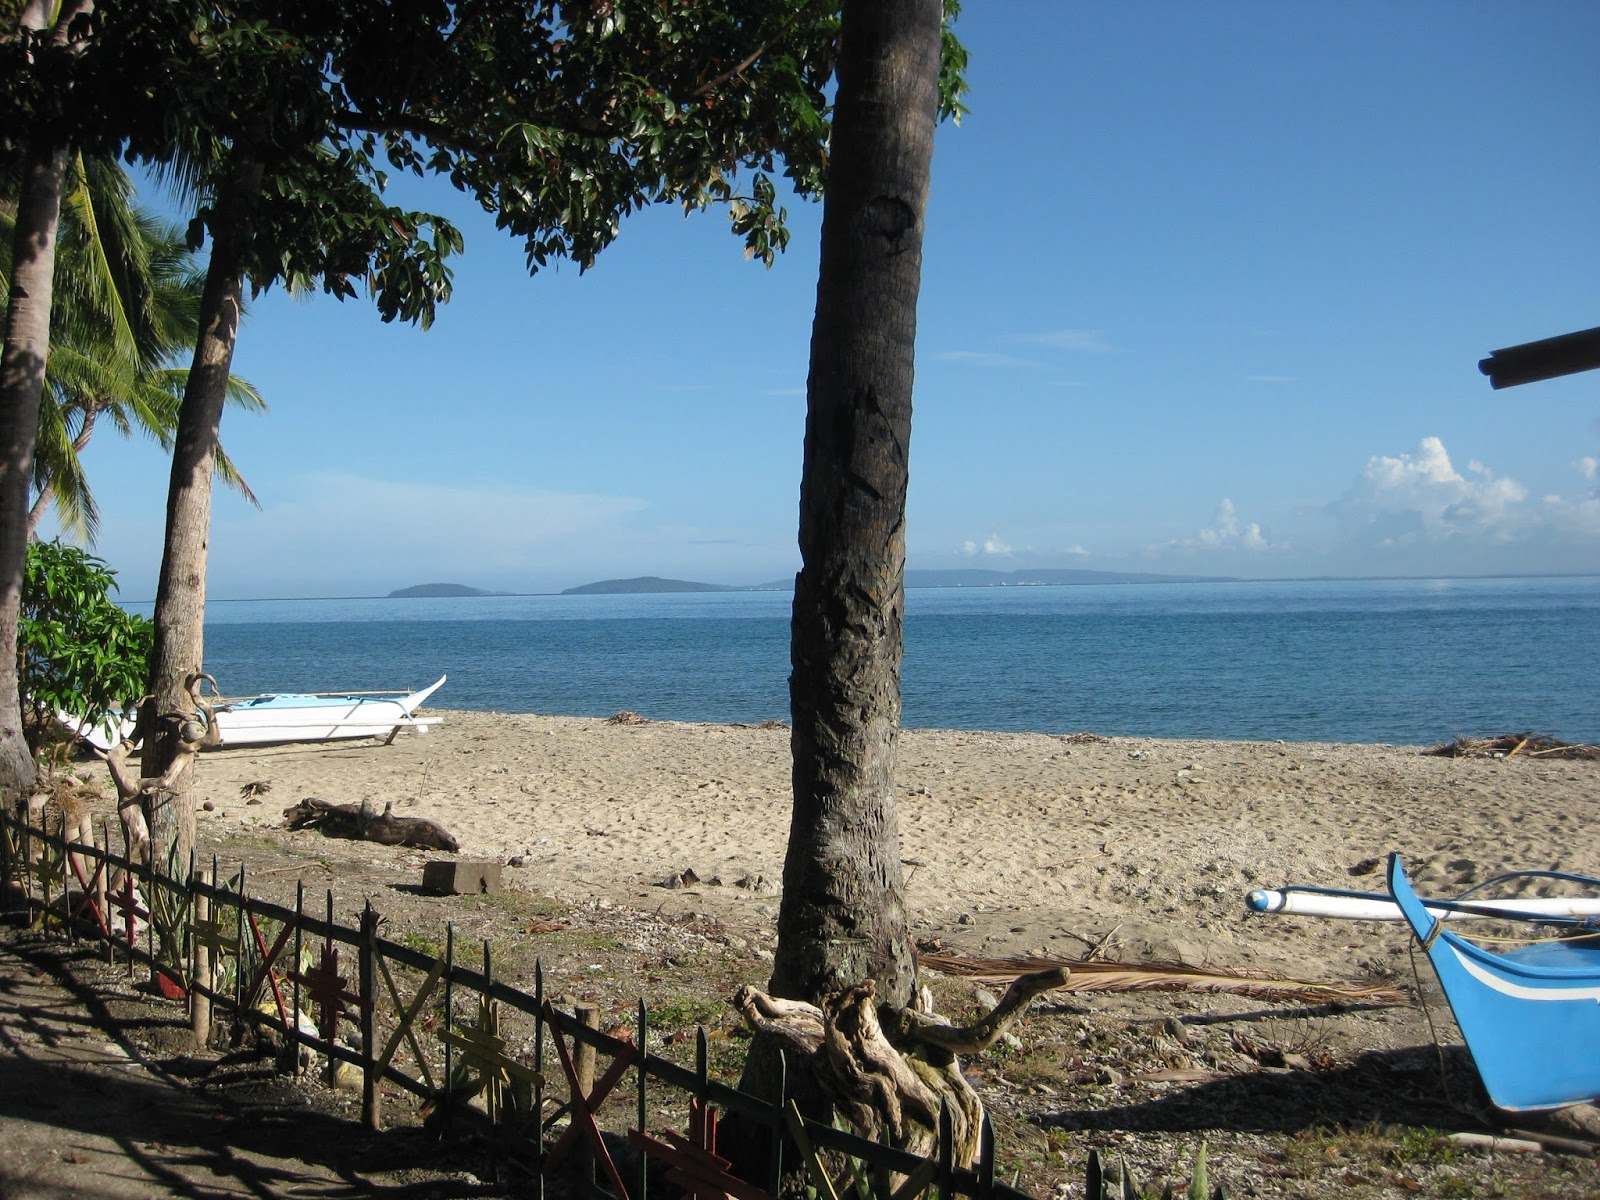 Beachfront Property in the Philippines